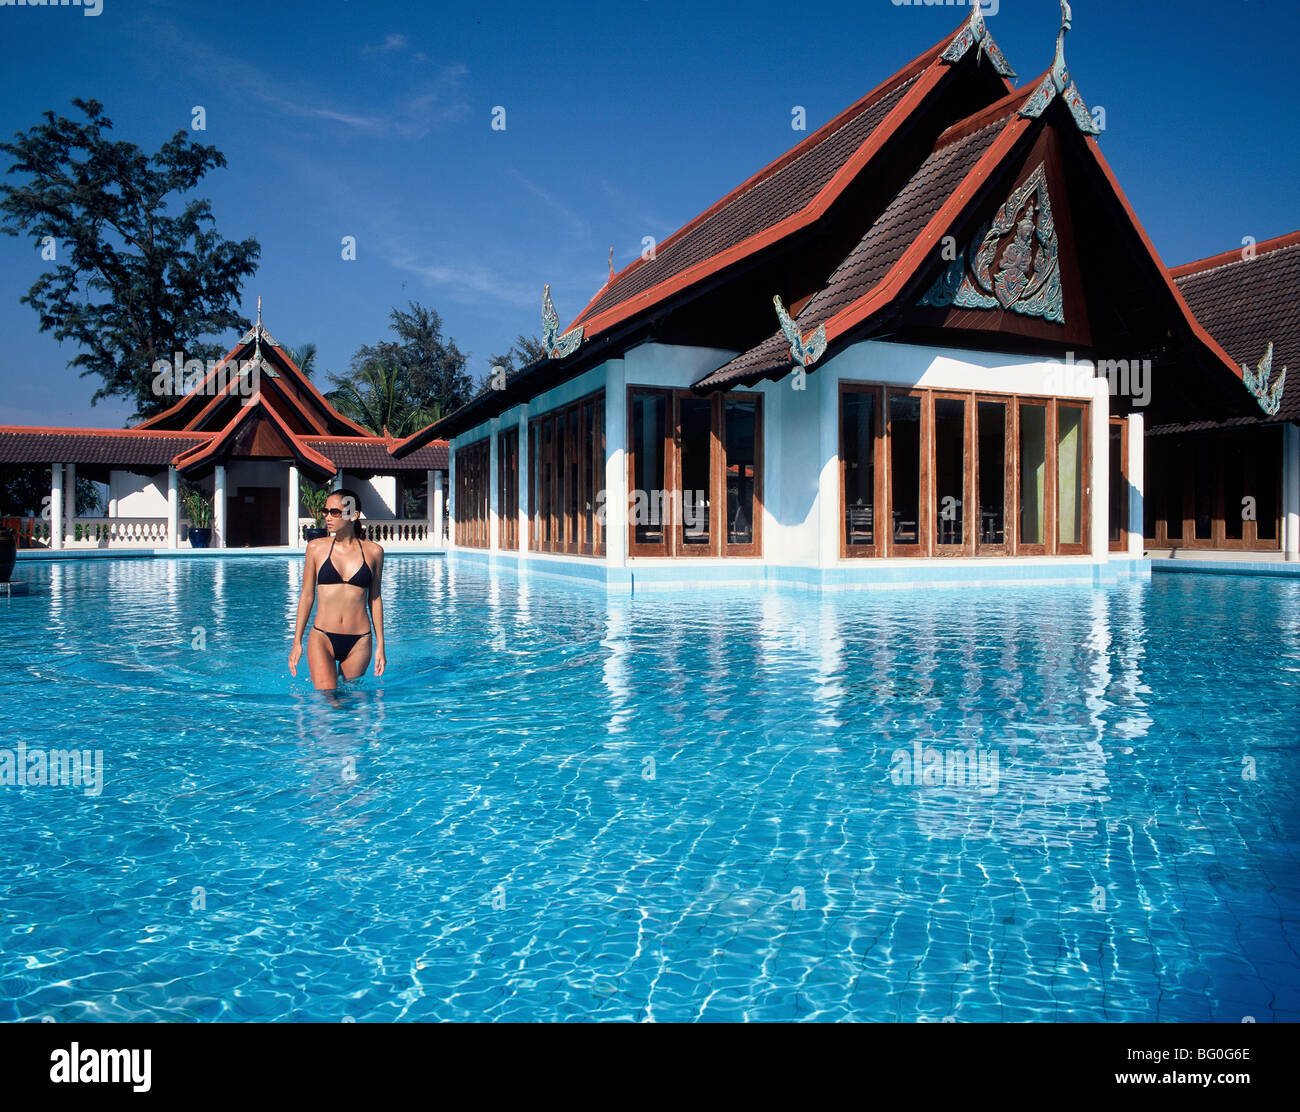 Club Med in Phuket, Thailand, Southeast Asia, Asia - Stock Image